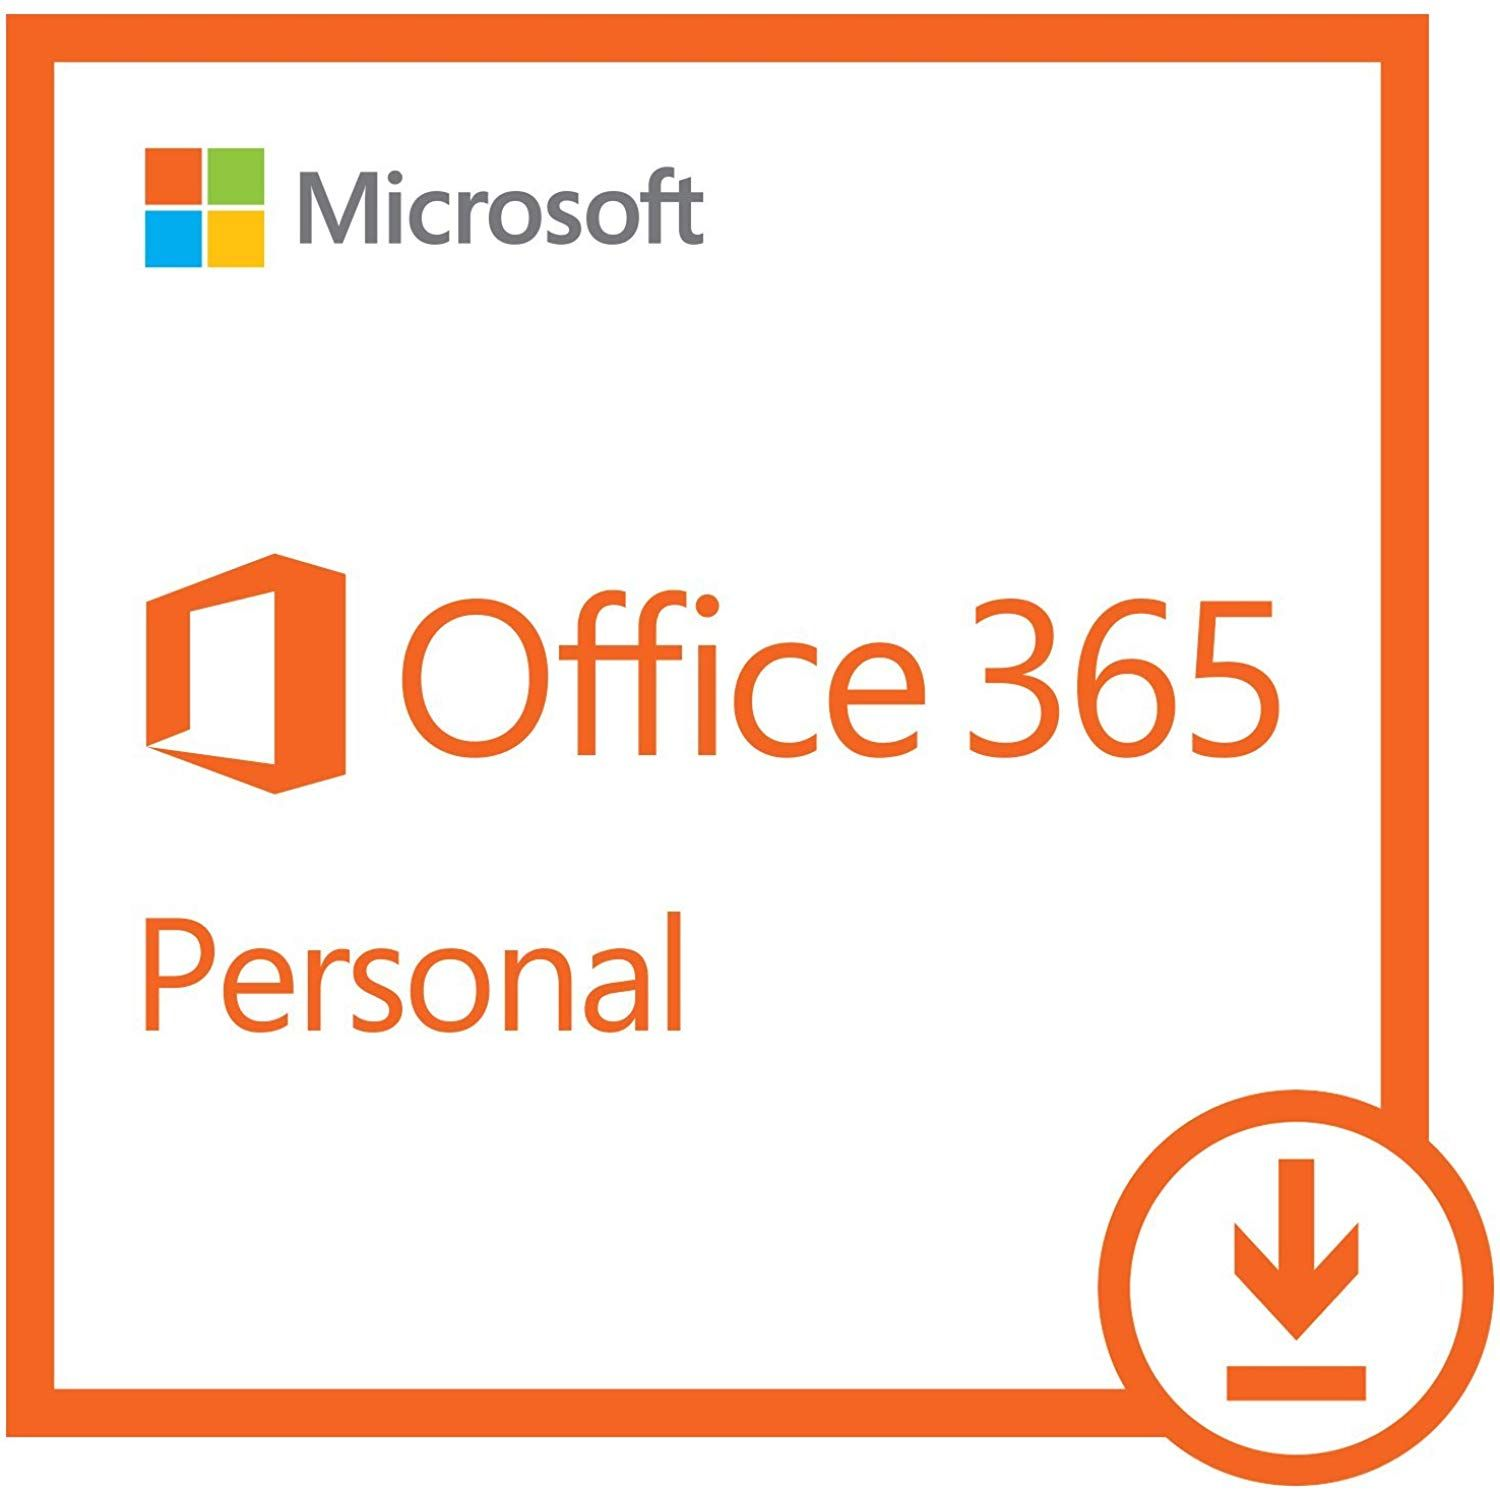 Microsoft Office 365 Personal 1 Year Subscription 1 User Pc Mac Download Software Microsoft Office